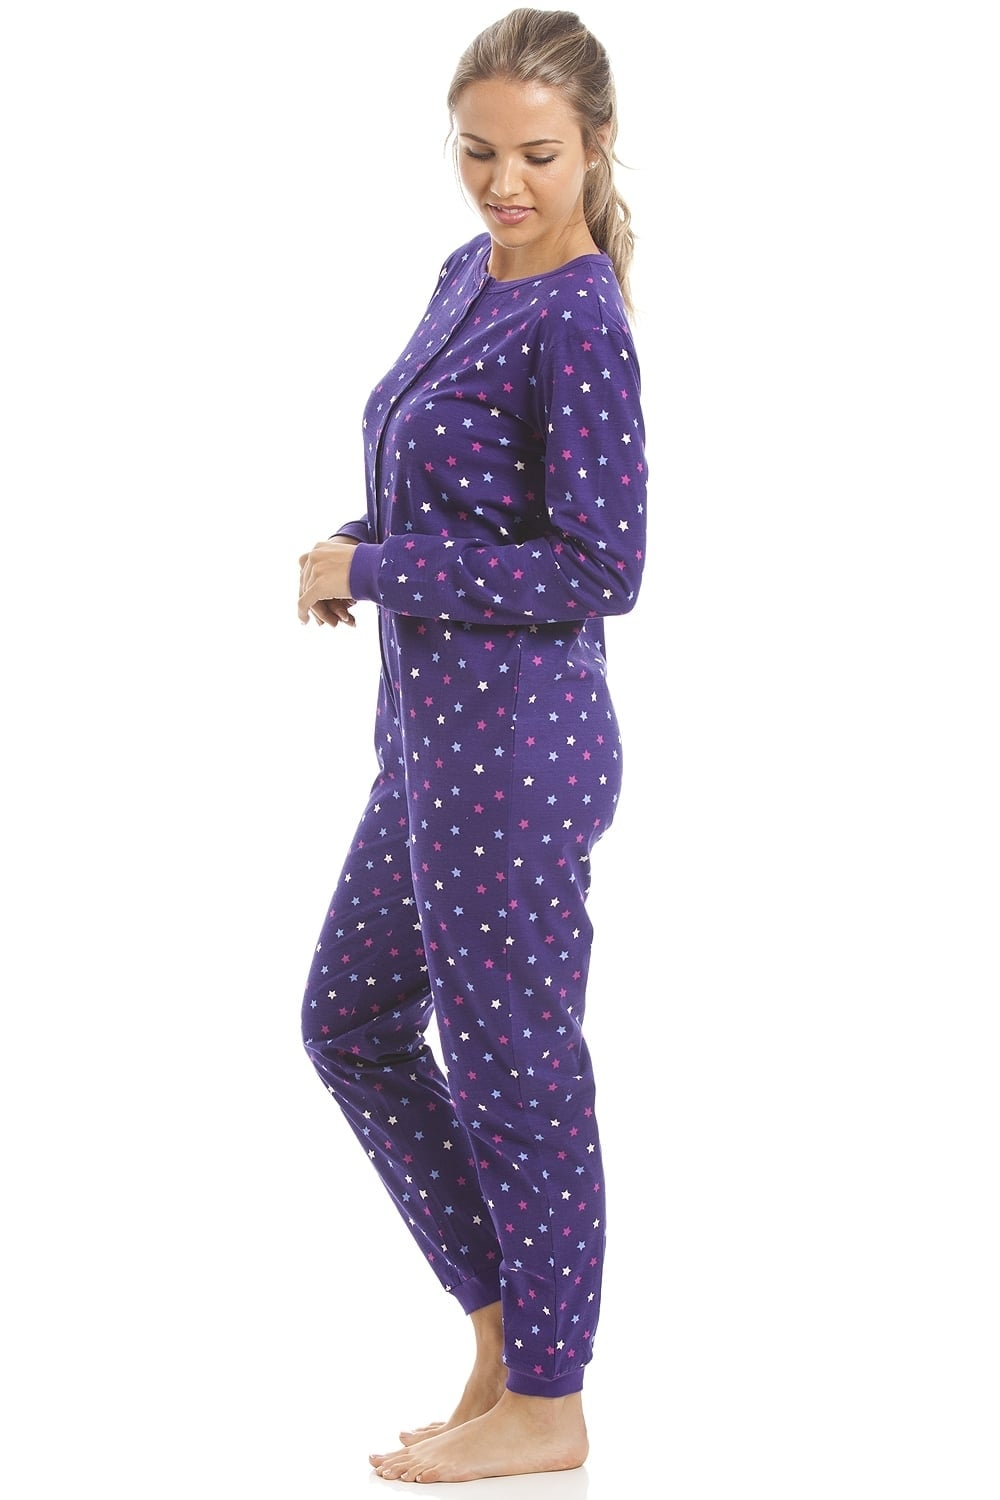 971d4c4e1dbc70 Camille 100% Cotton Multi-Coloured Star Print Purple Onesie